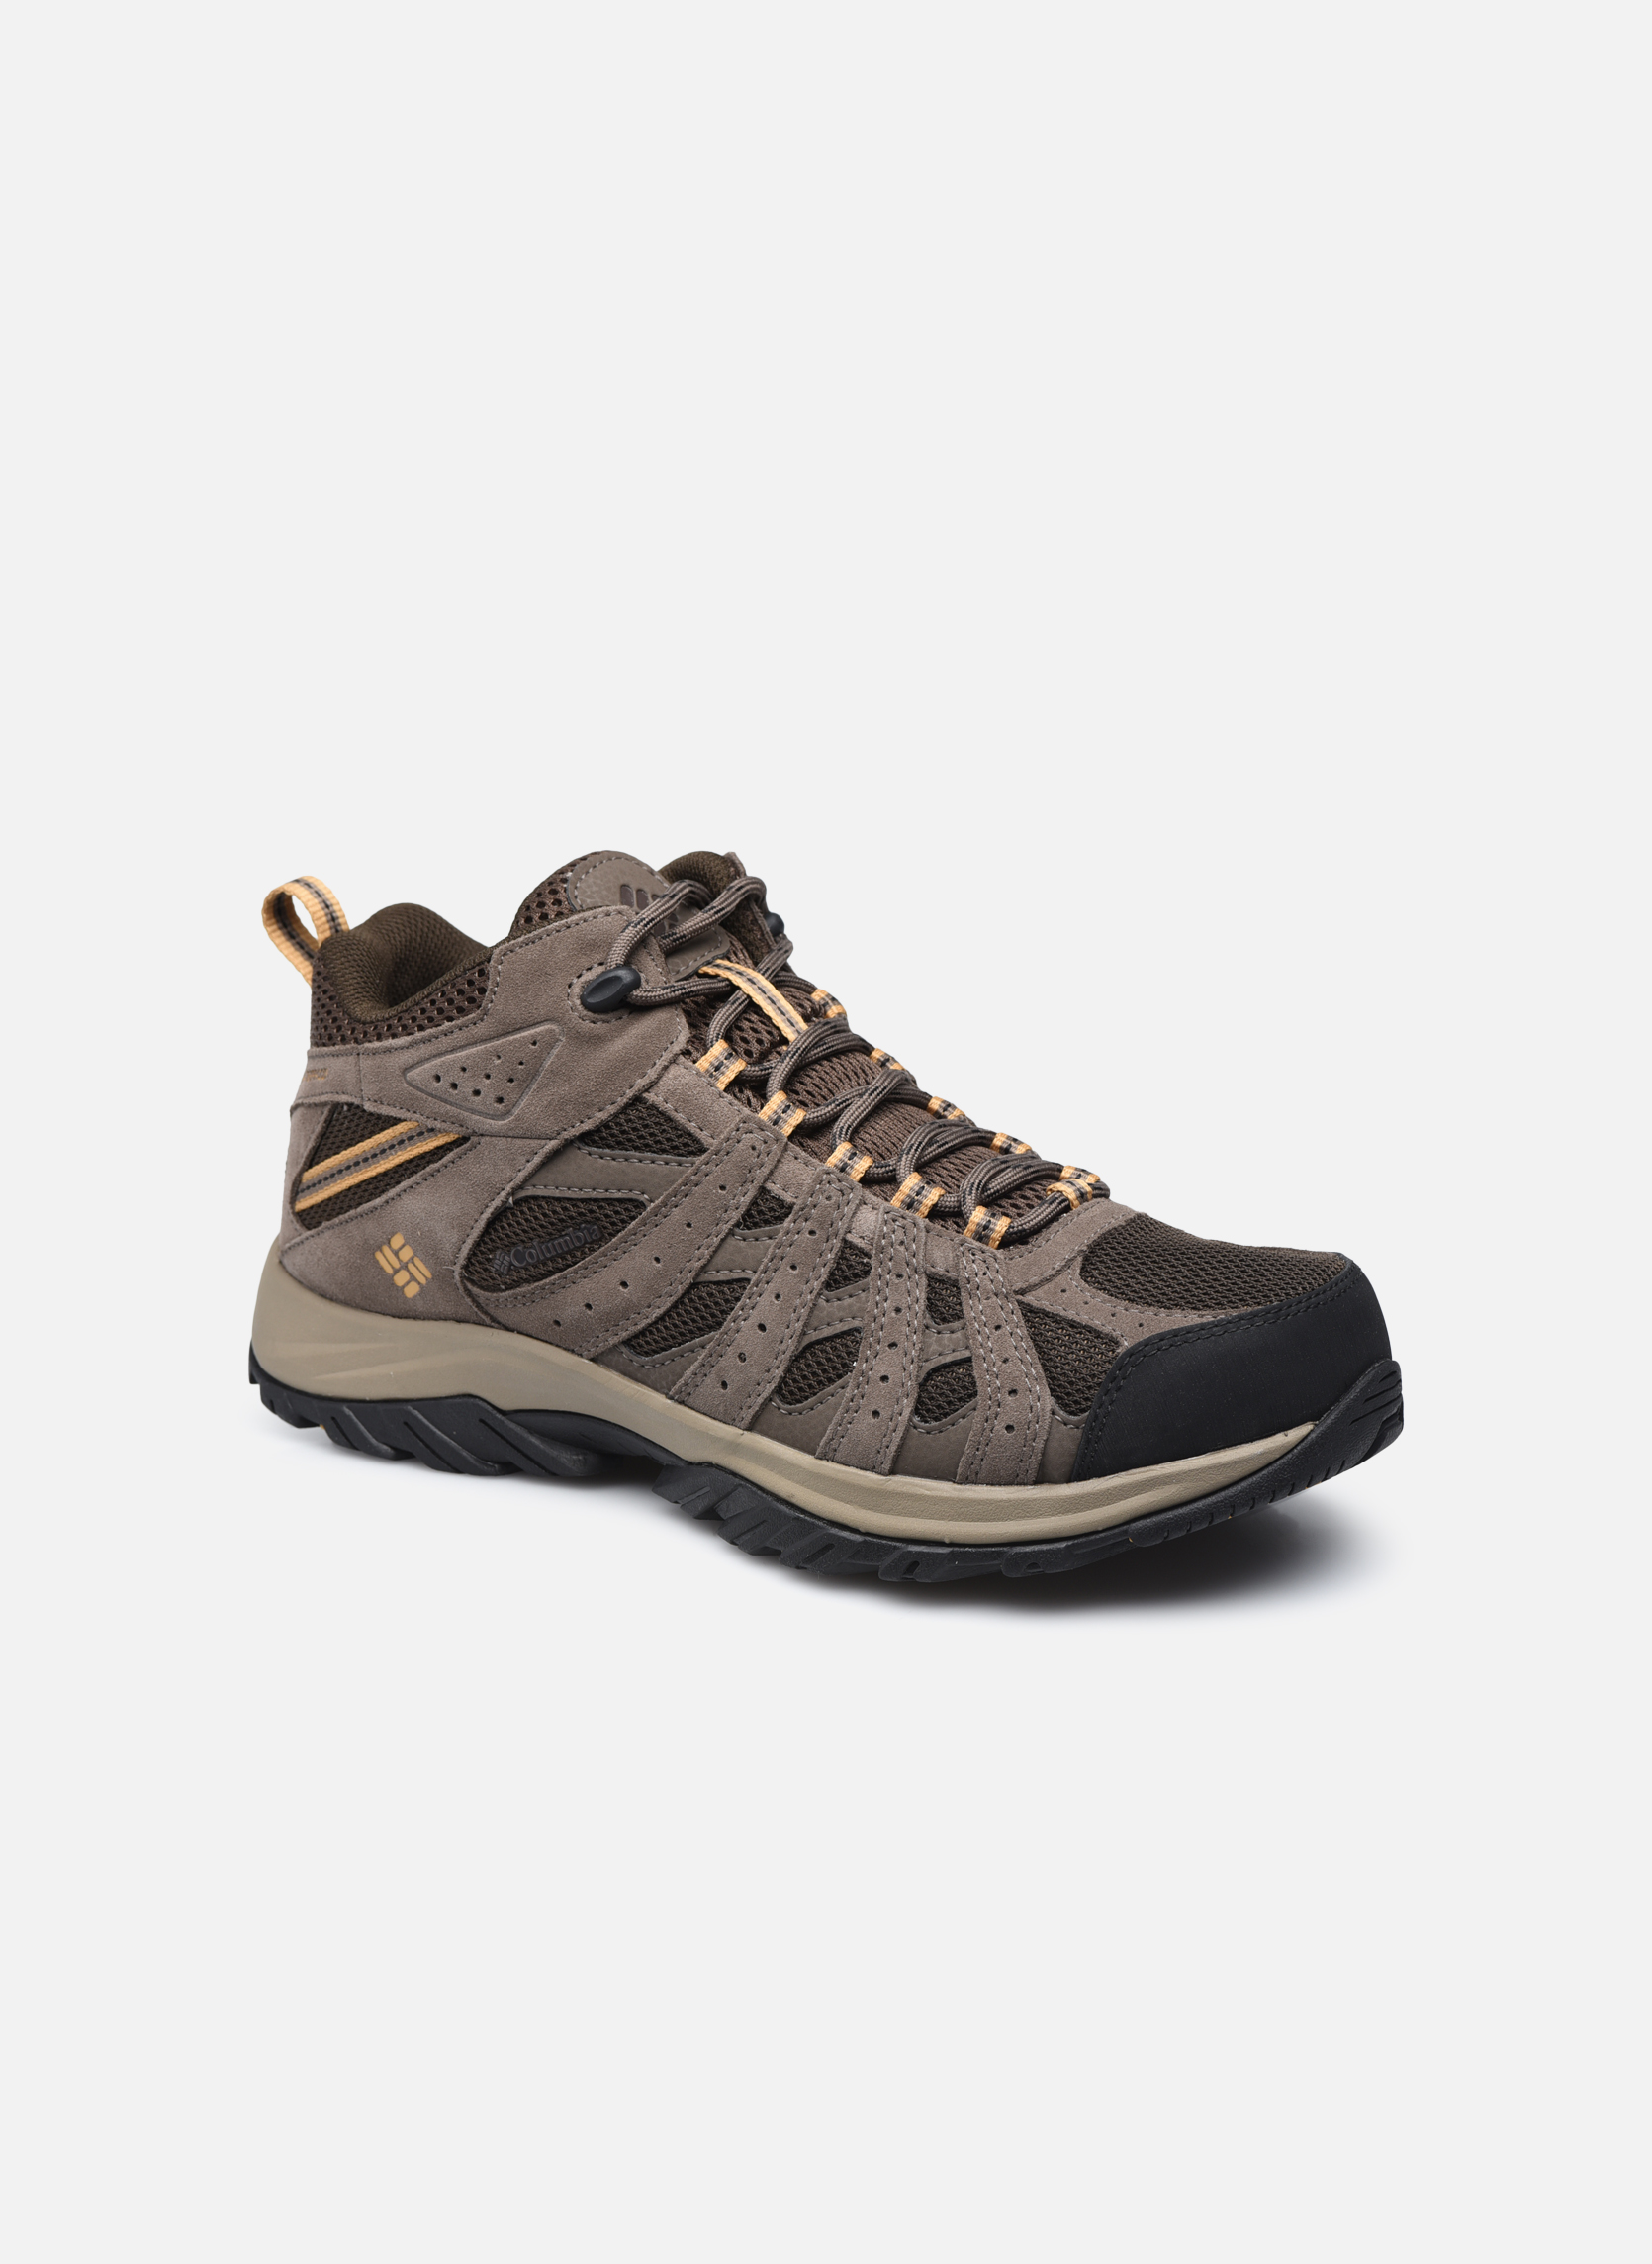 Sportschuhe Herren Canyon Point Mid Waterproof